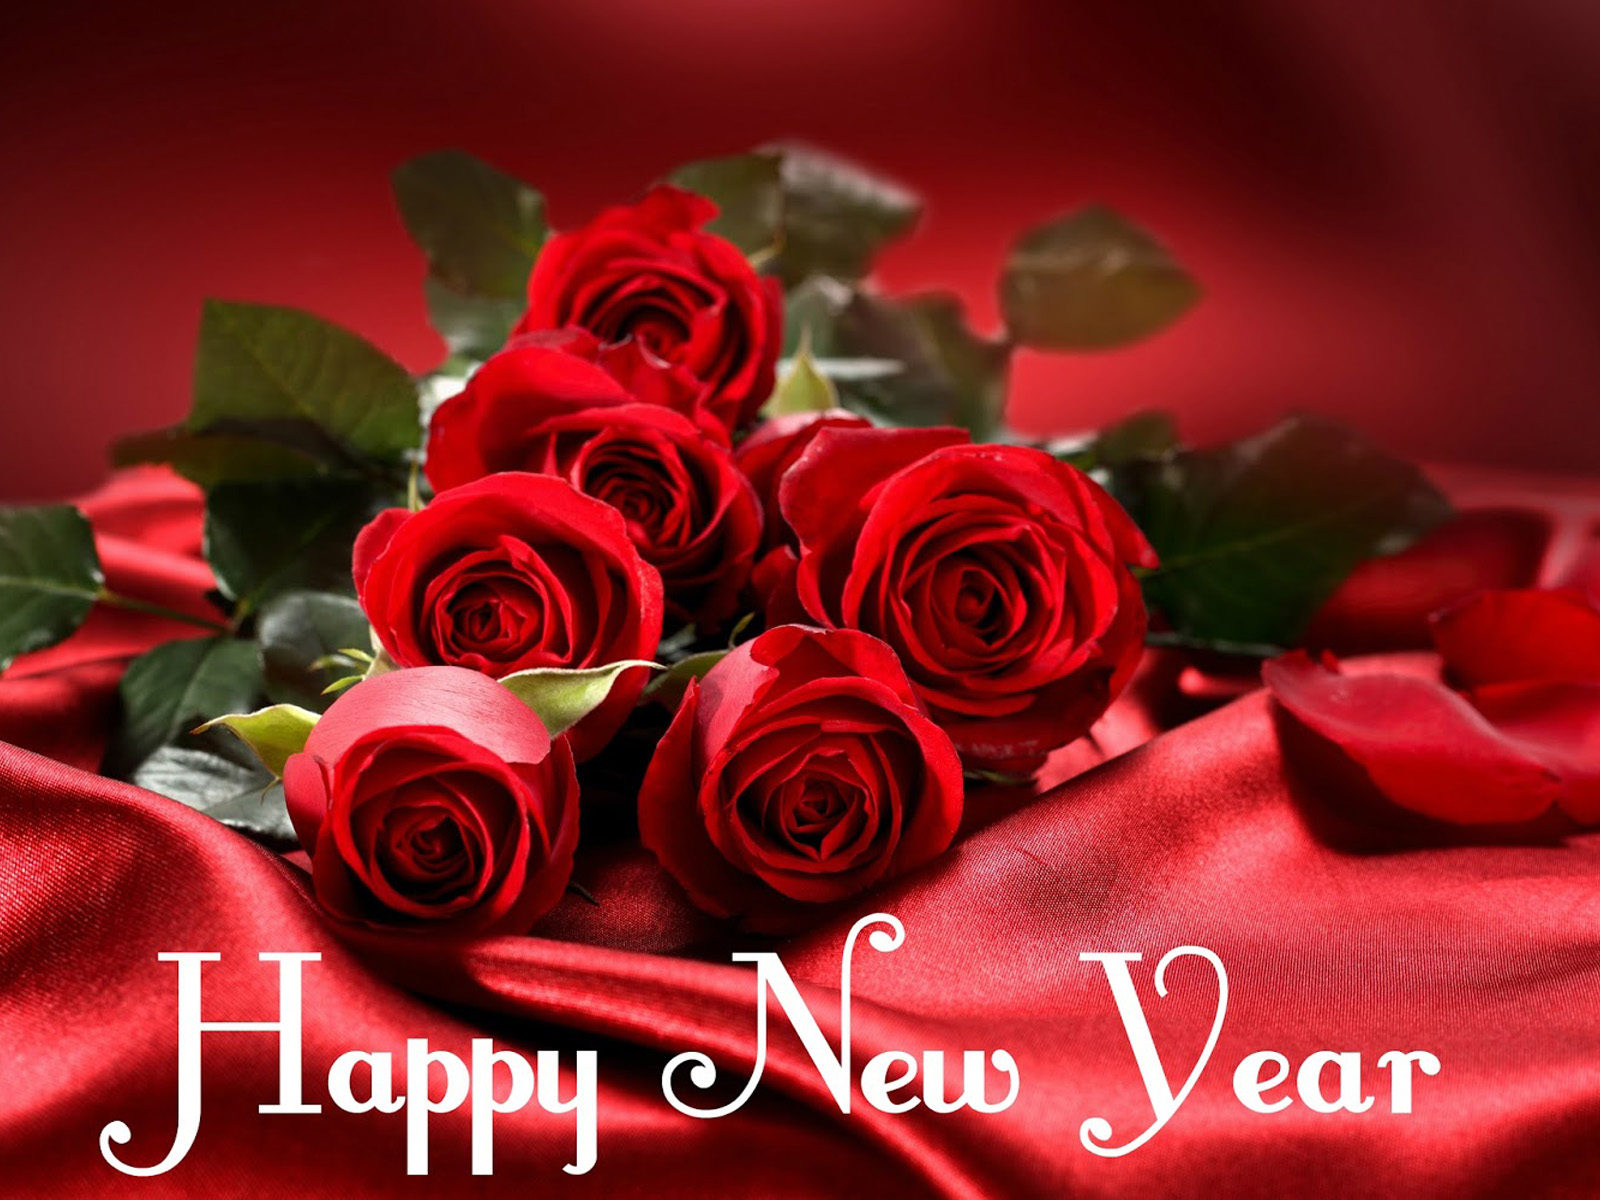 Happy New Year Red Roses Flower Images 2020 Greeting Card 1600x1200